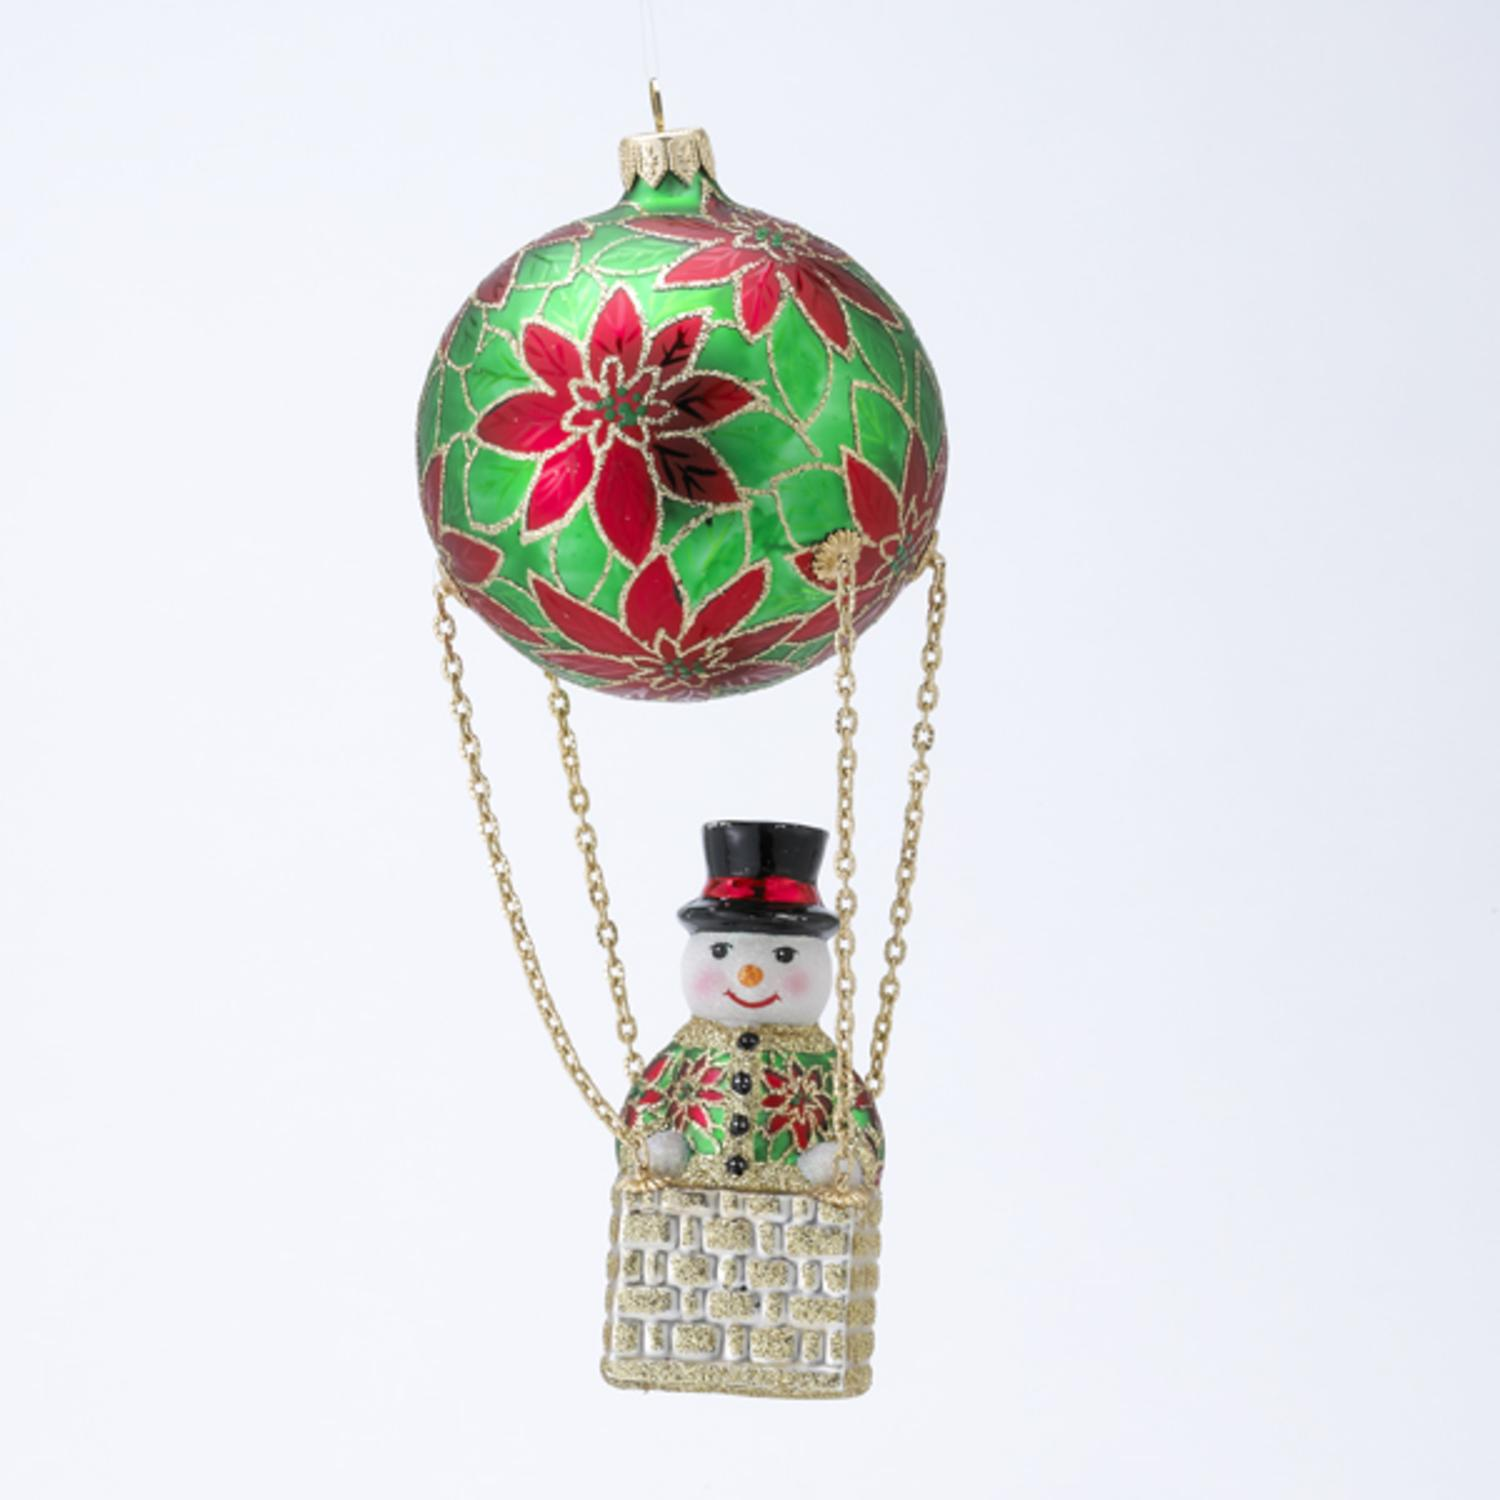 David Strand Designs Glass Frosty Skies Poinsettias Snowman Christmas Ornament